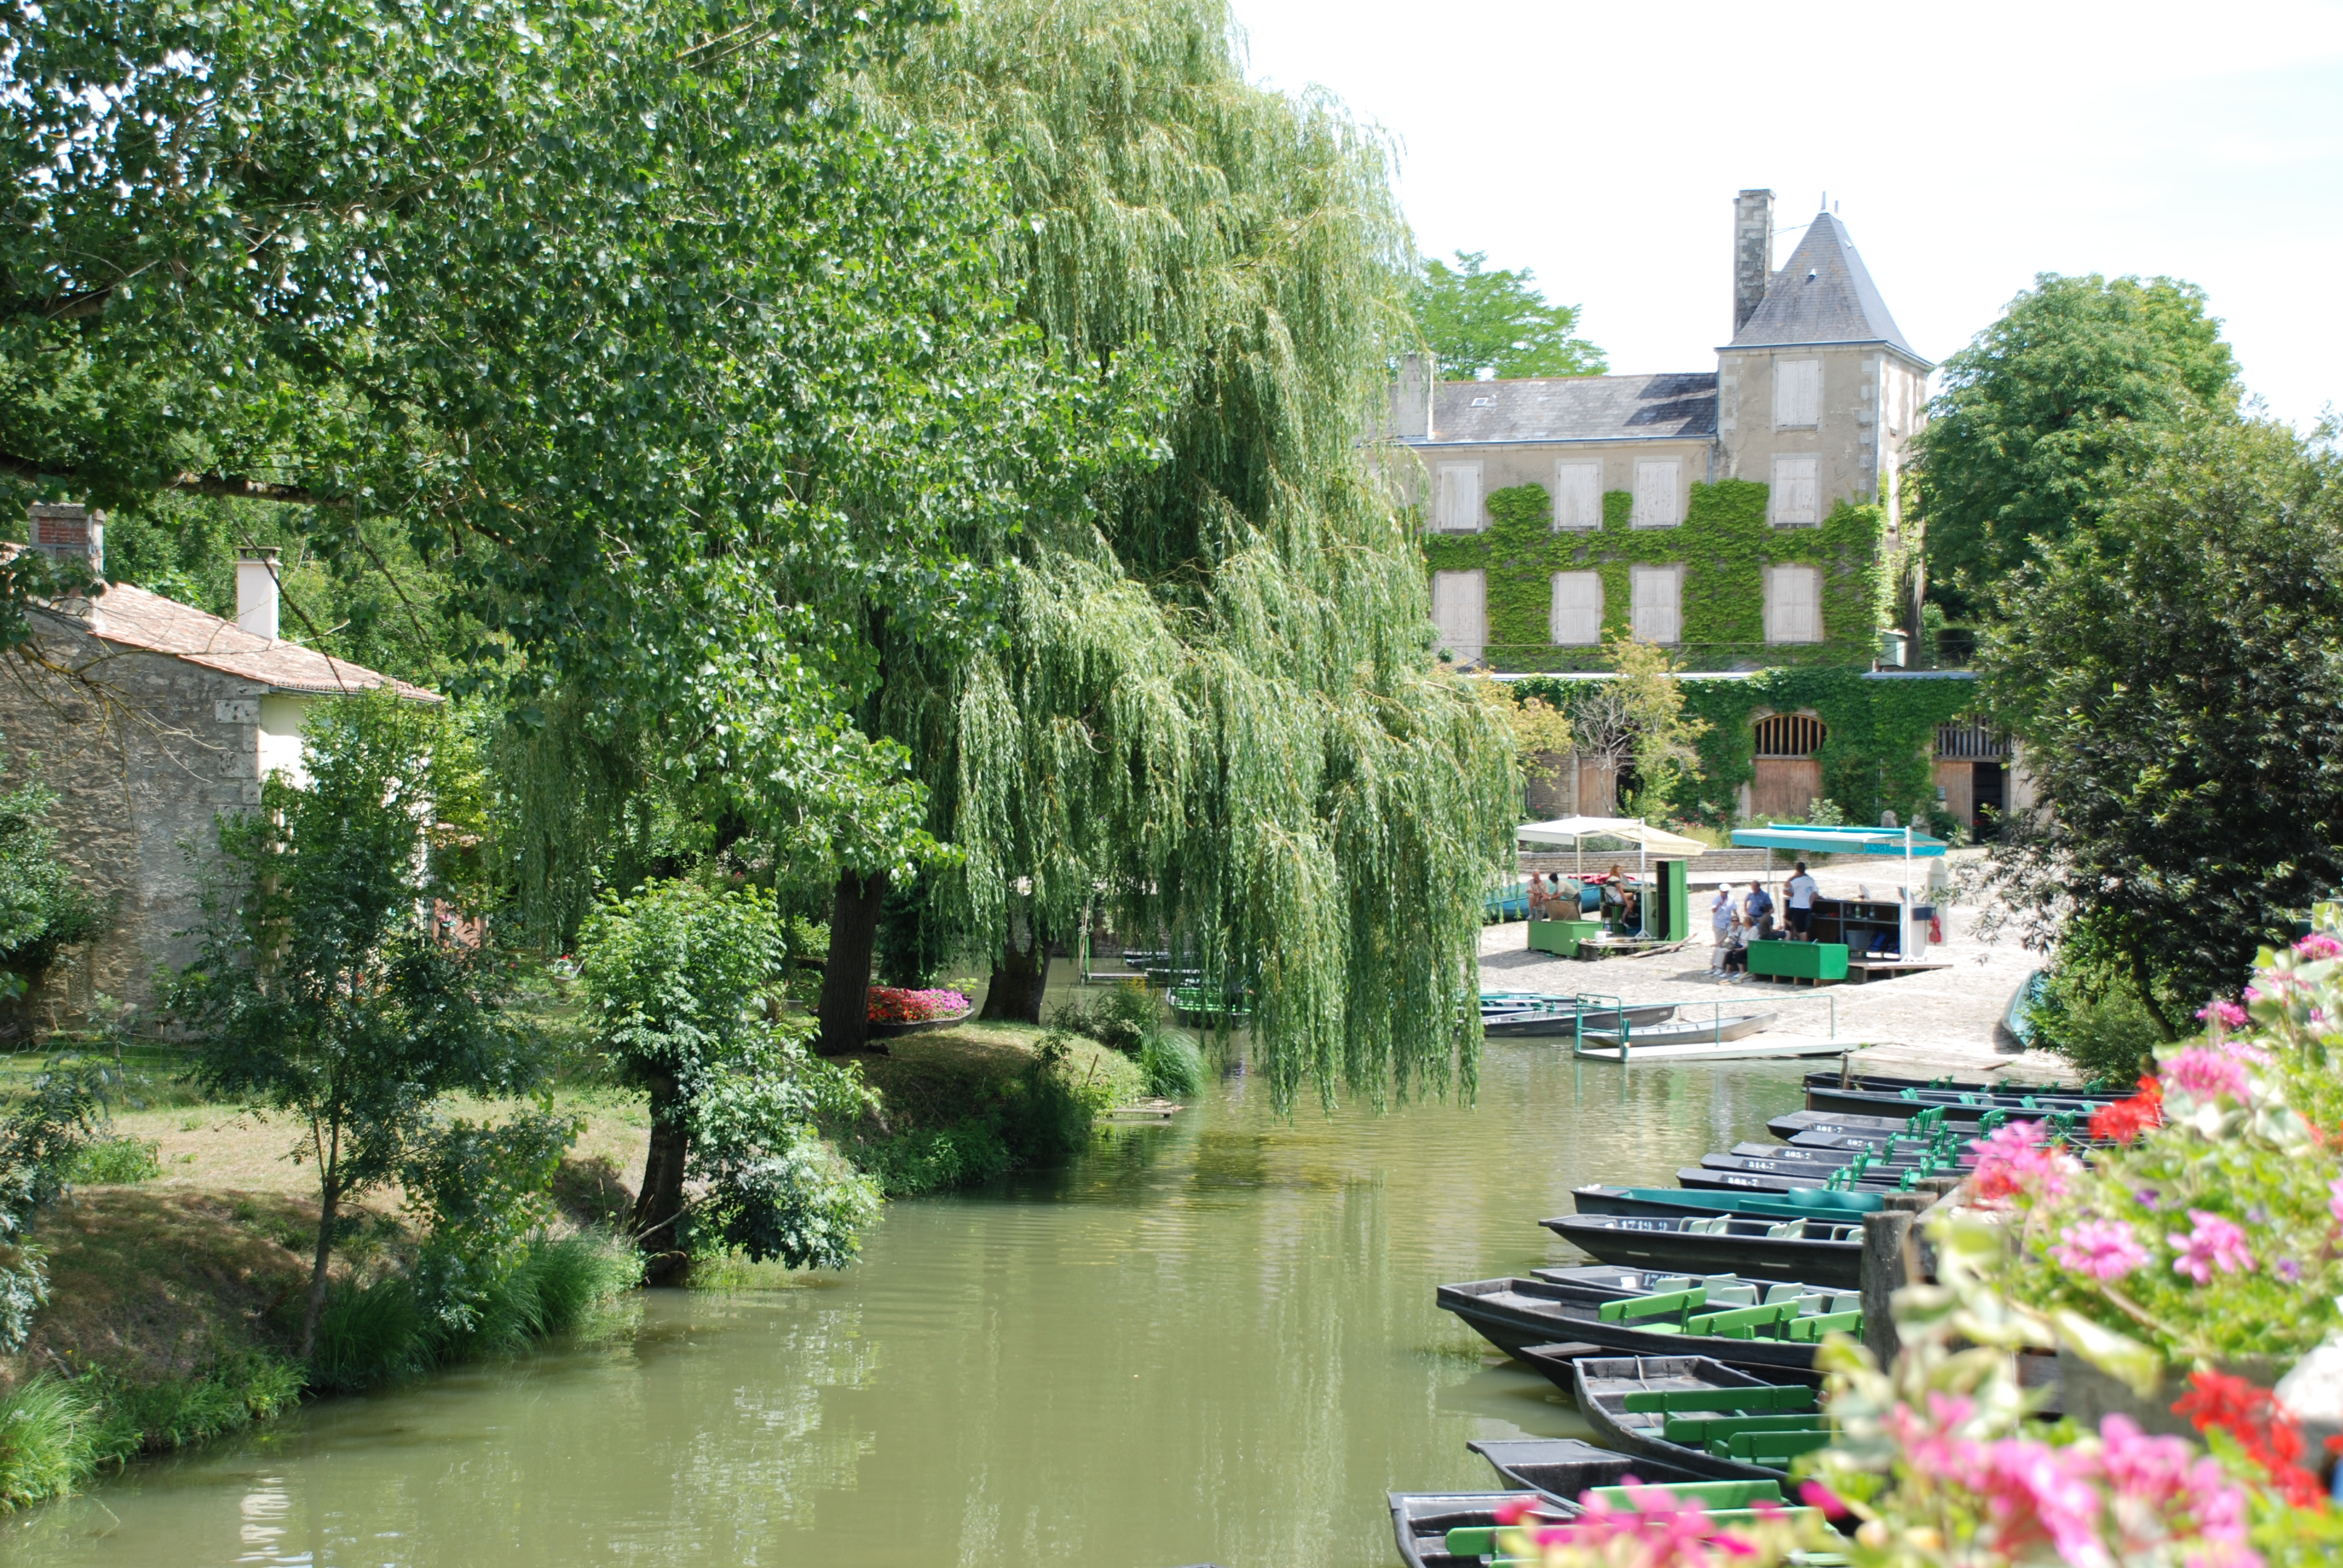 Harbour of Arçais with the home of the nineteenth century and the pier in the Marais poitevin régional nature park.